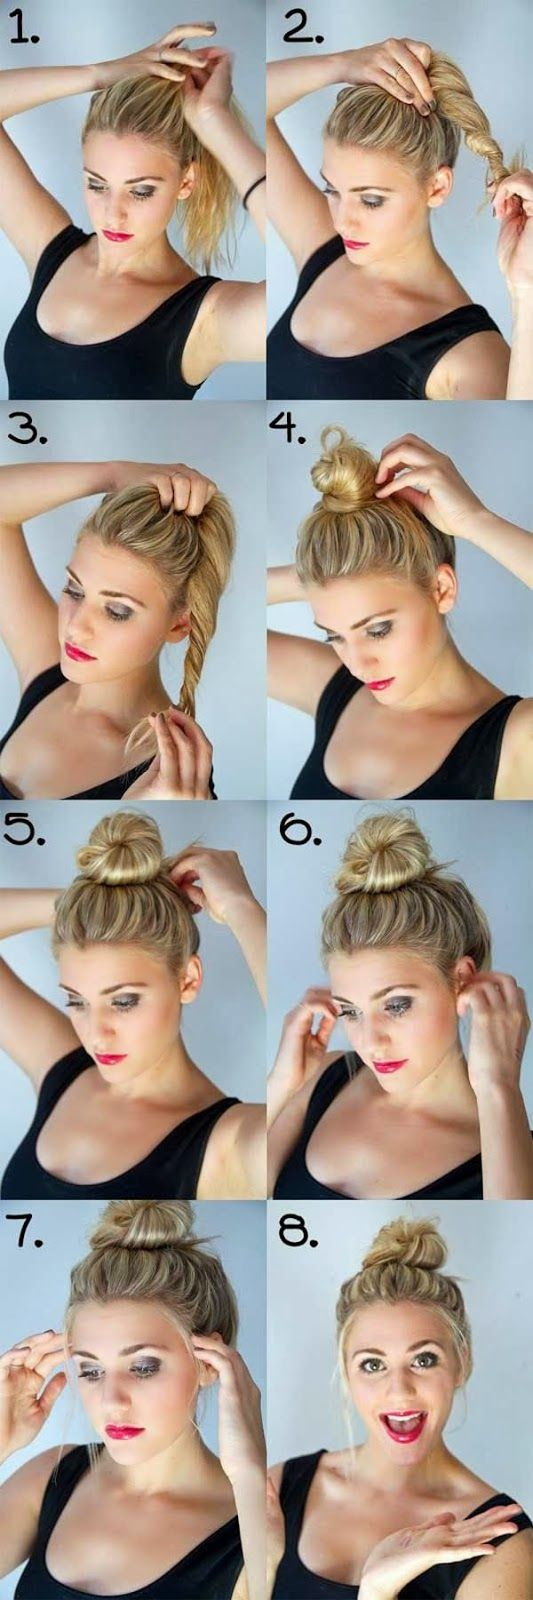 Hair Pixiie: How to do Fashion Style Bun! pinned from hair.pixiie.net